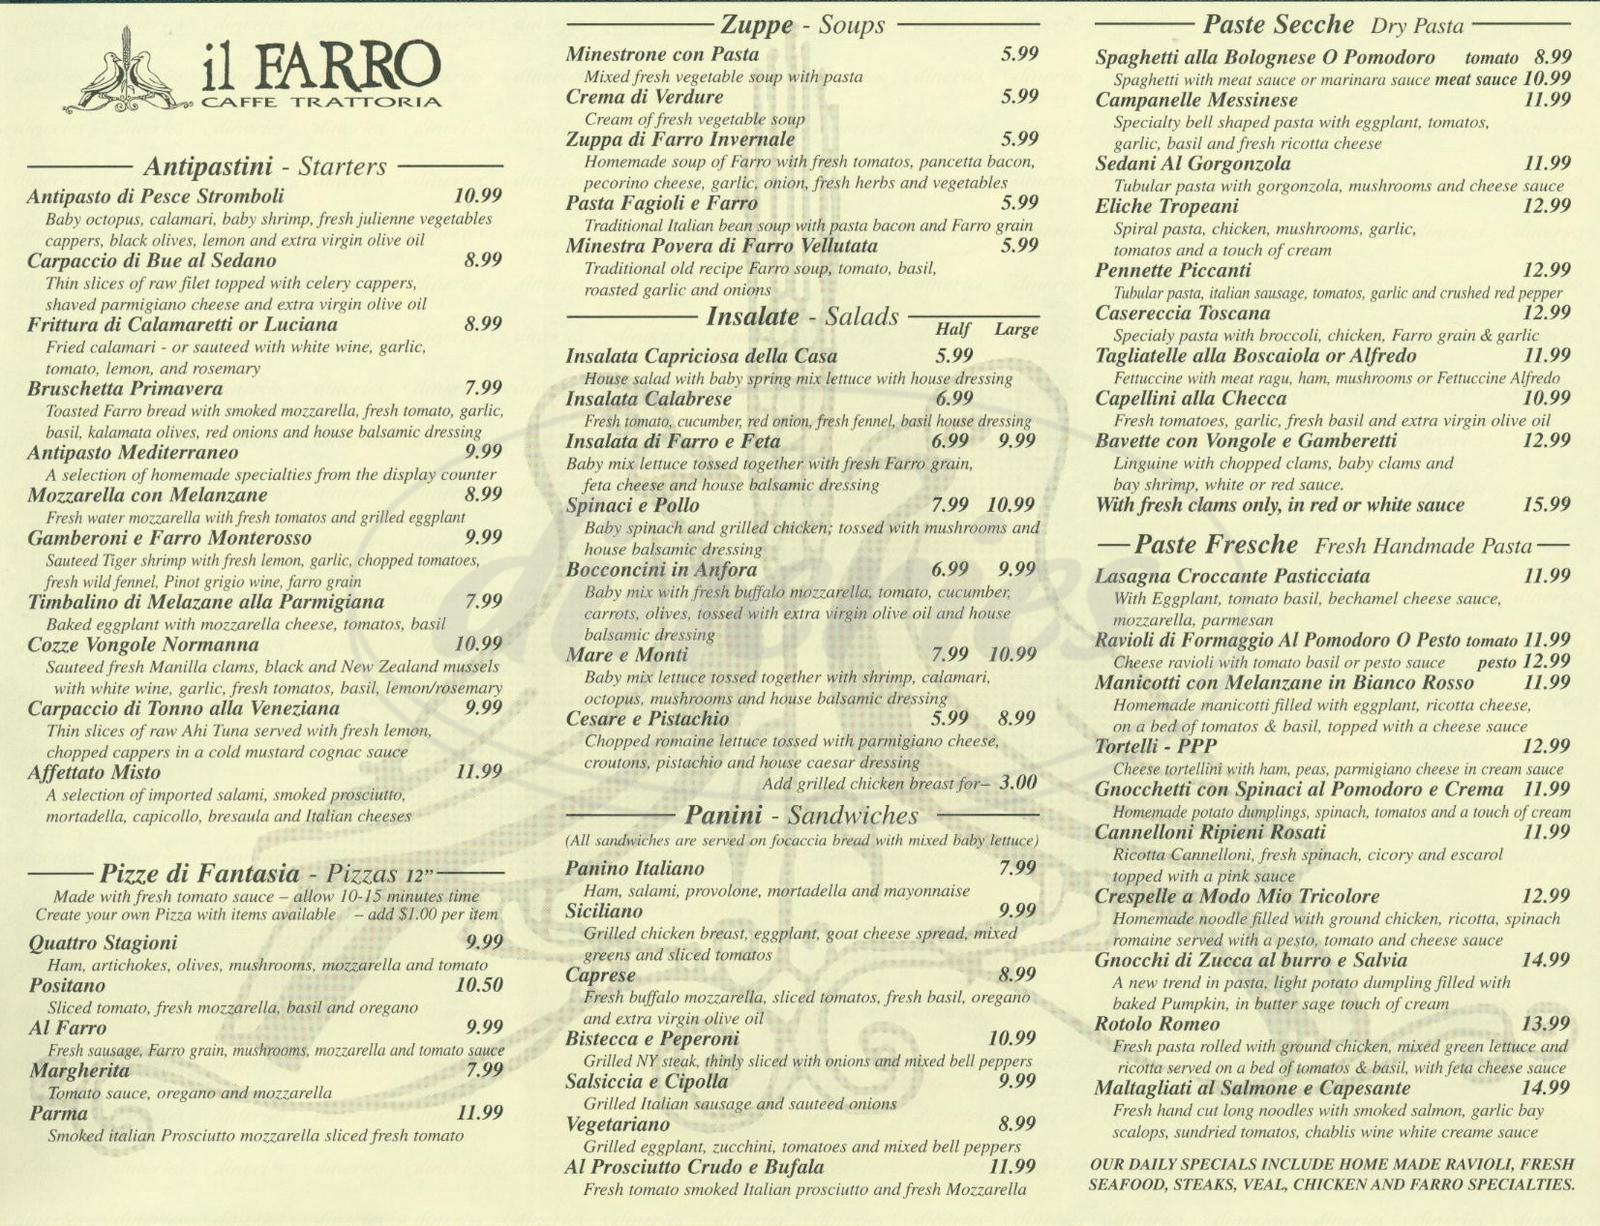 menu for Il Farro